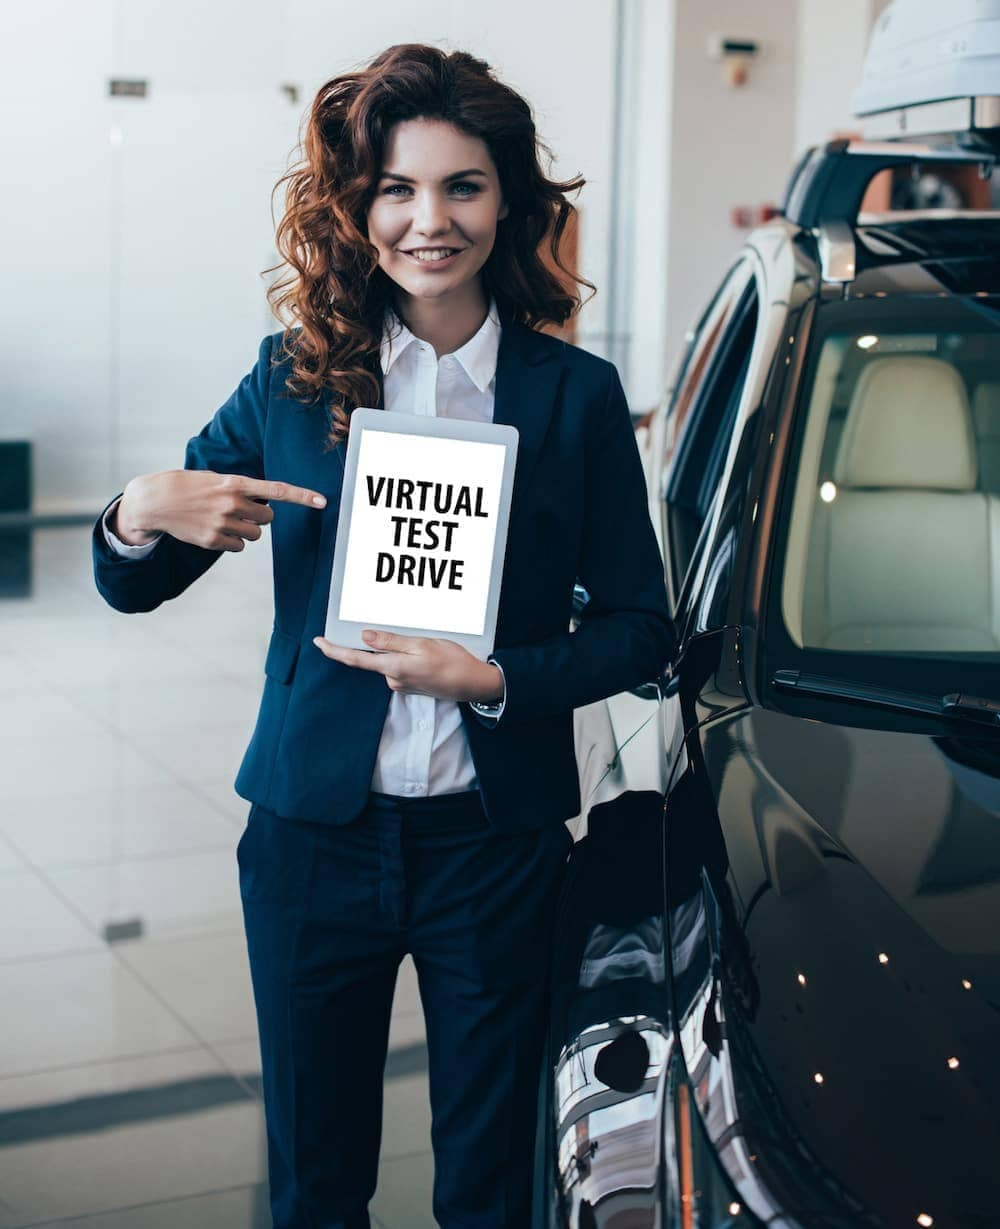 A woman holding a virtual test drive sign